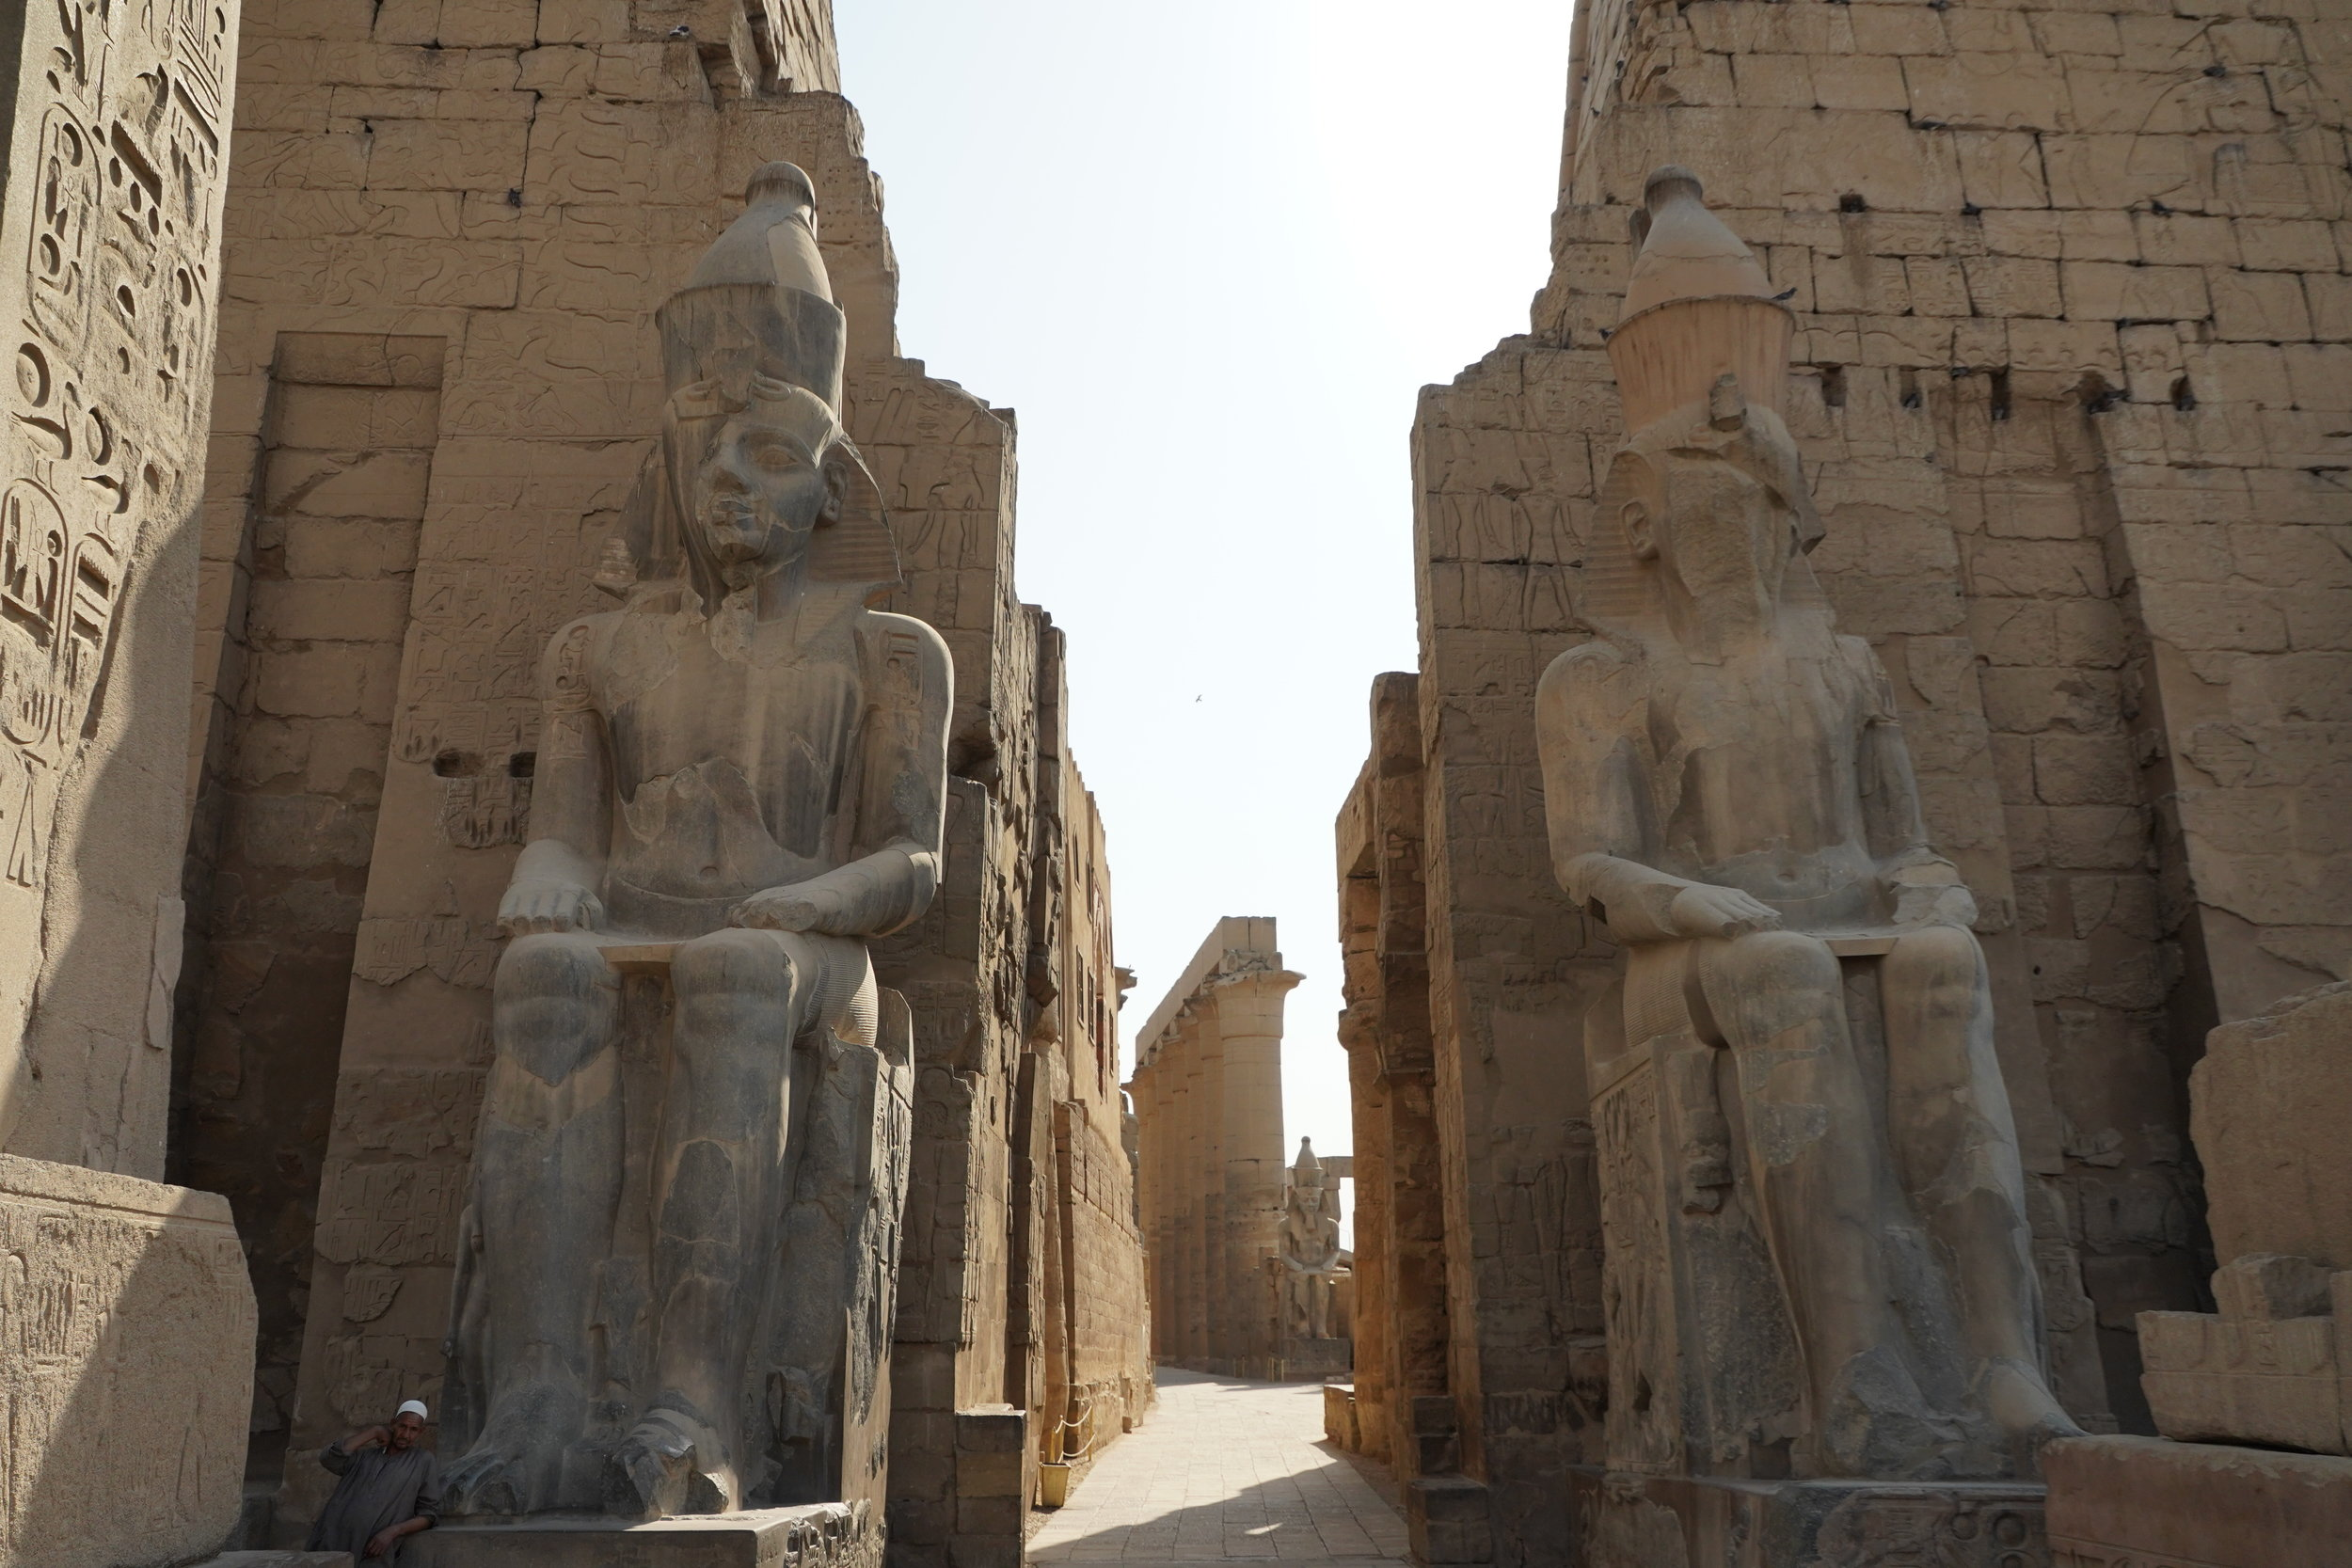 The Temple of Luxor without a tourist in sight.